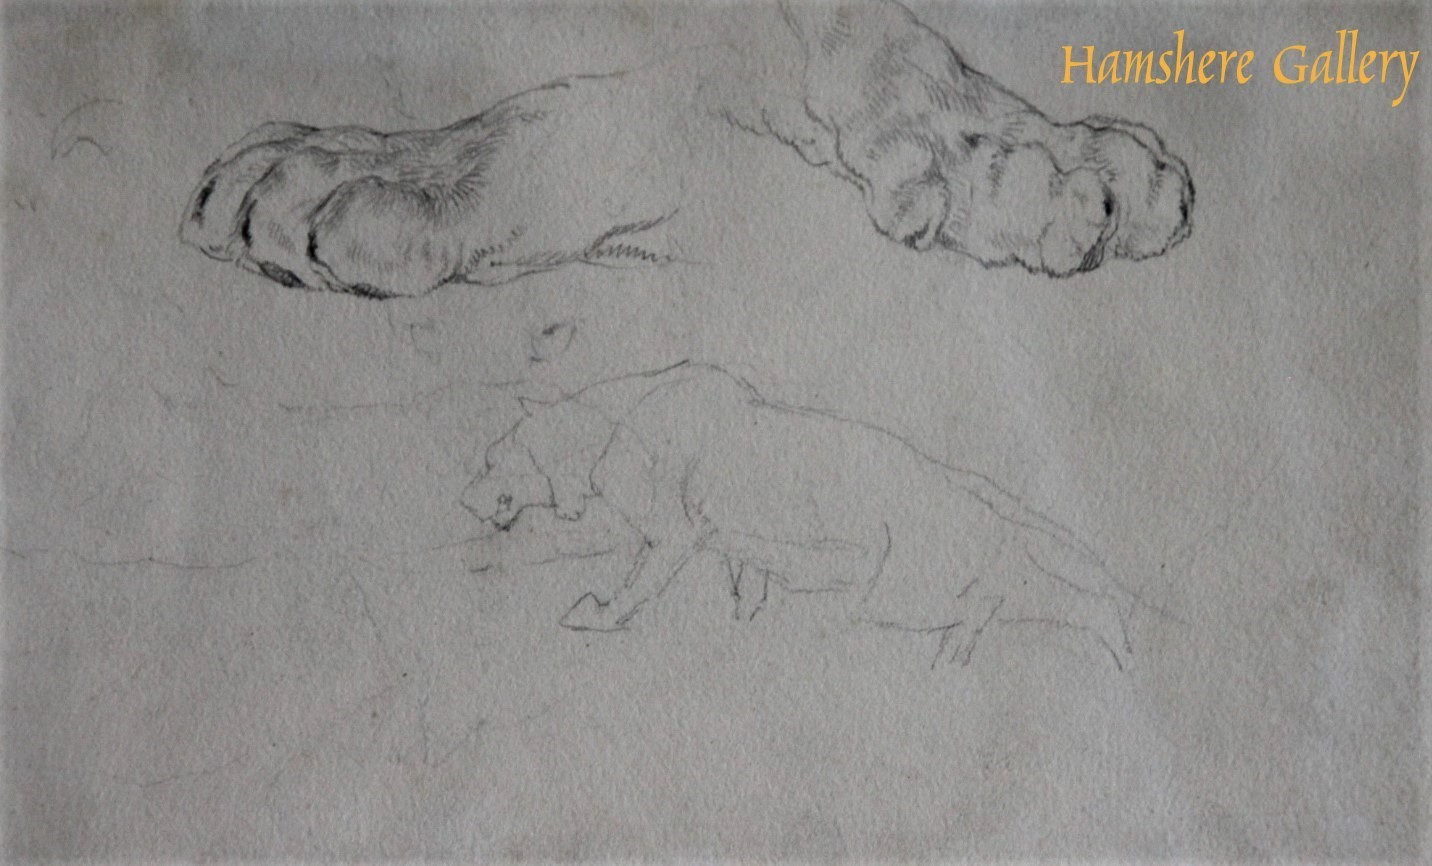 Click to see full size: A pencil study of tiger's paws and a tiger by Sir Edwin Henry Landseer R.A. Trafalgar Square